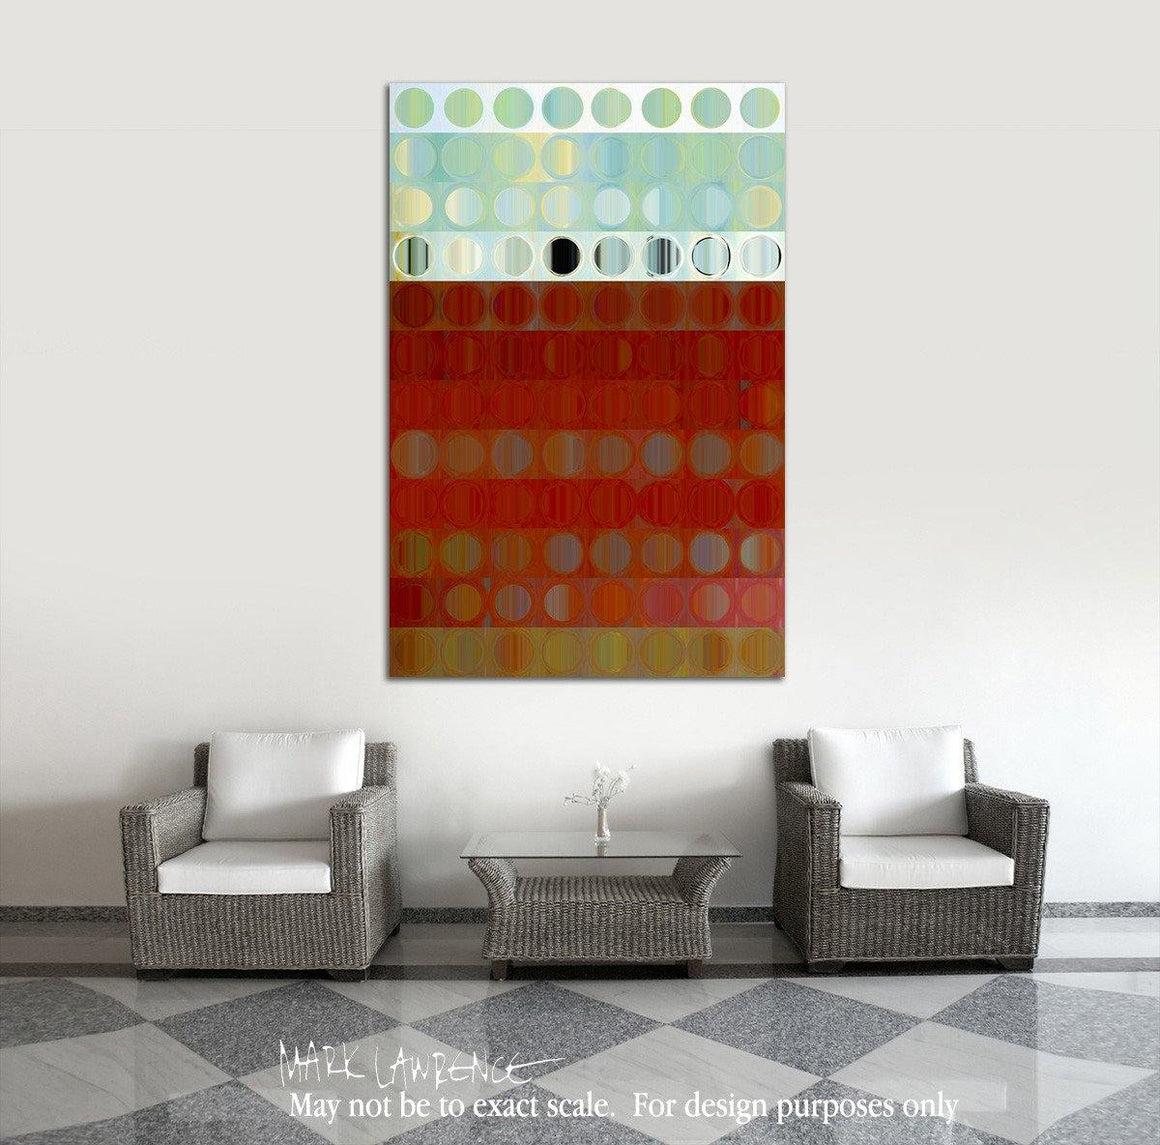 Interior Design Focal Art Inspiration-Circles & Squares 34. Exquisite Traditional Fine Art. Original limited edition signed canvas & paper giclees by internationally collected artist Mark Lawrence